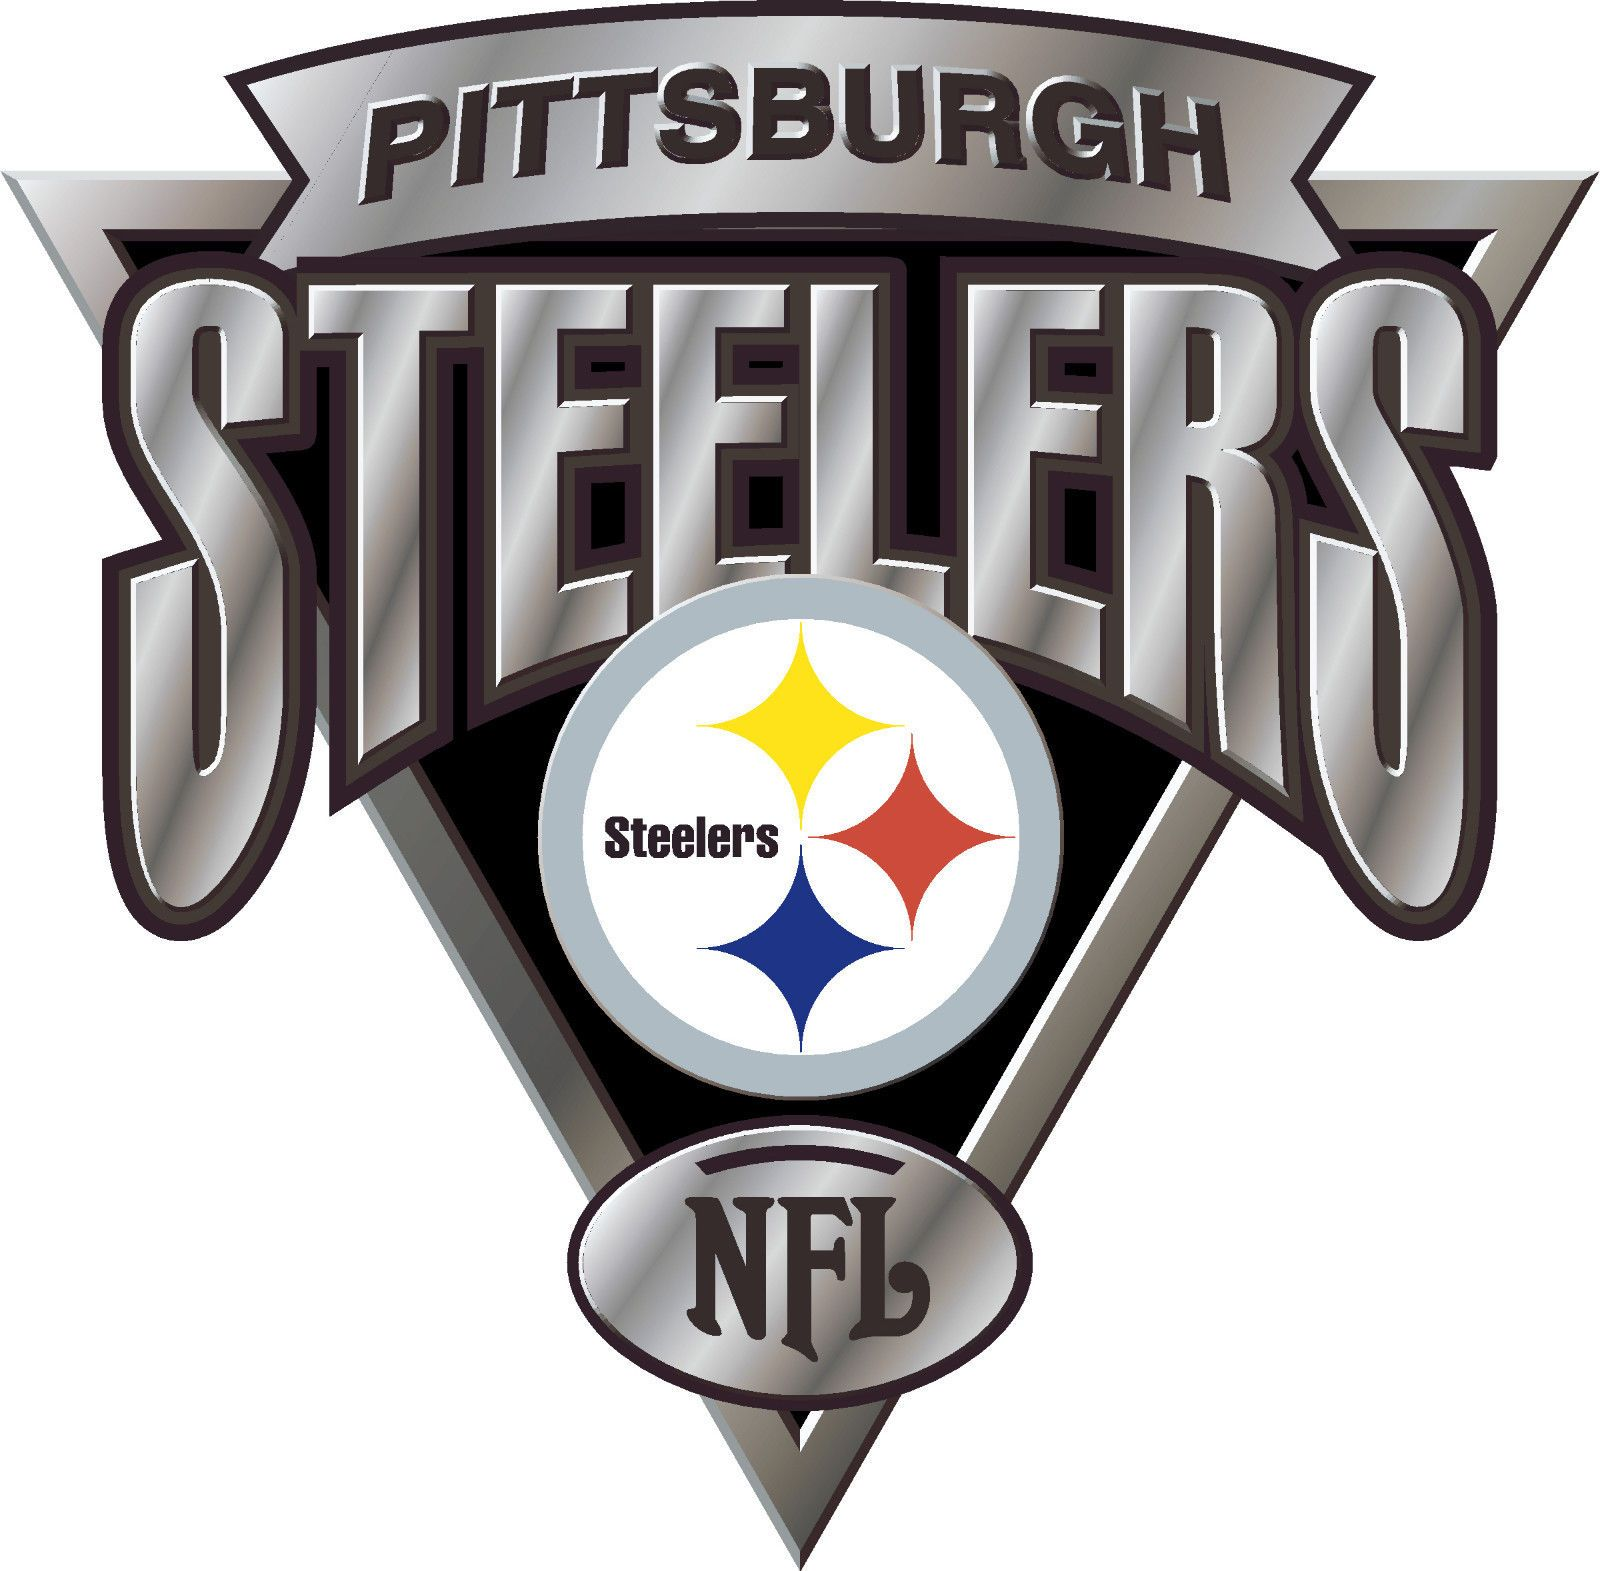 Pittsburgh Steelers 5 Nfl Team Logo Vinyl Decal Sticker